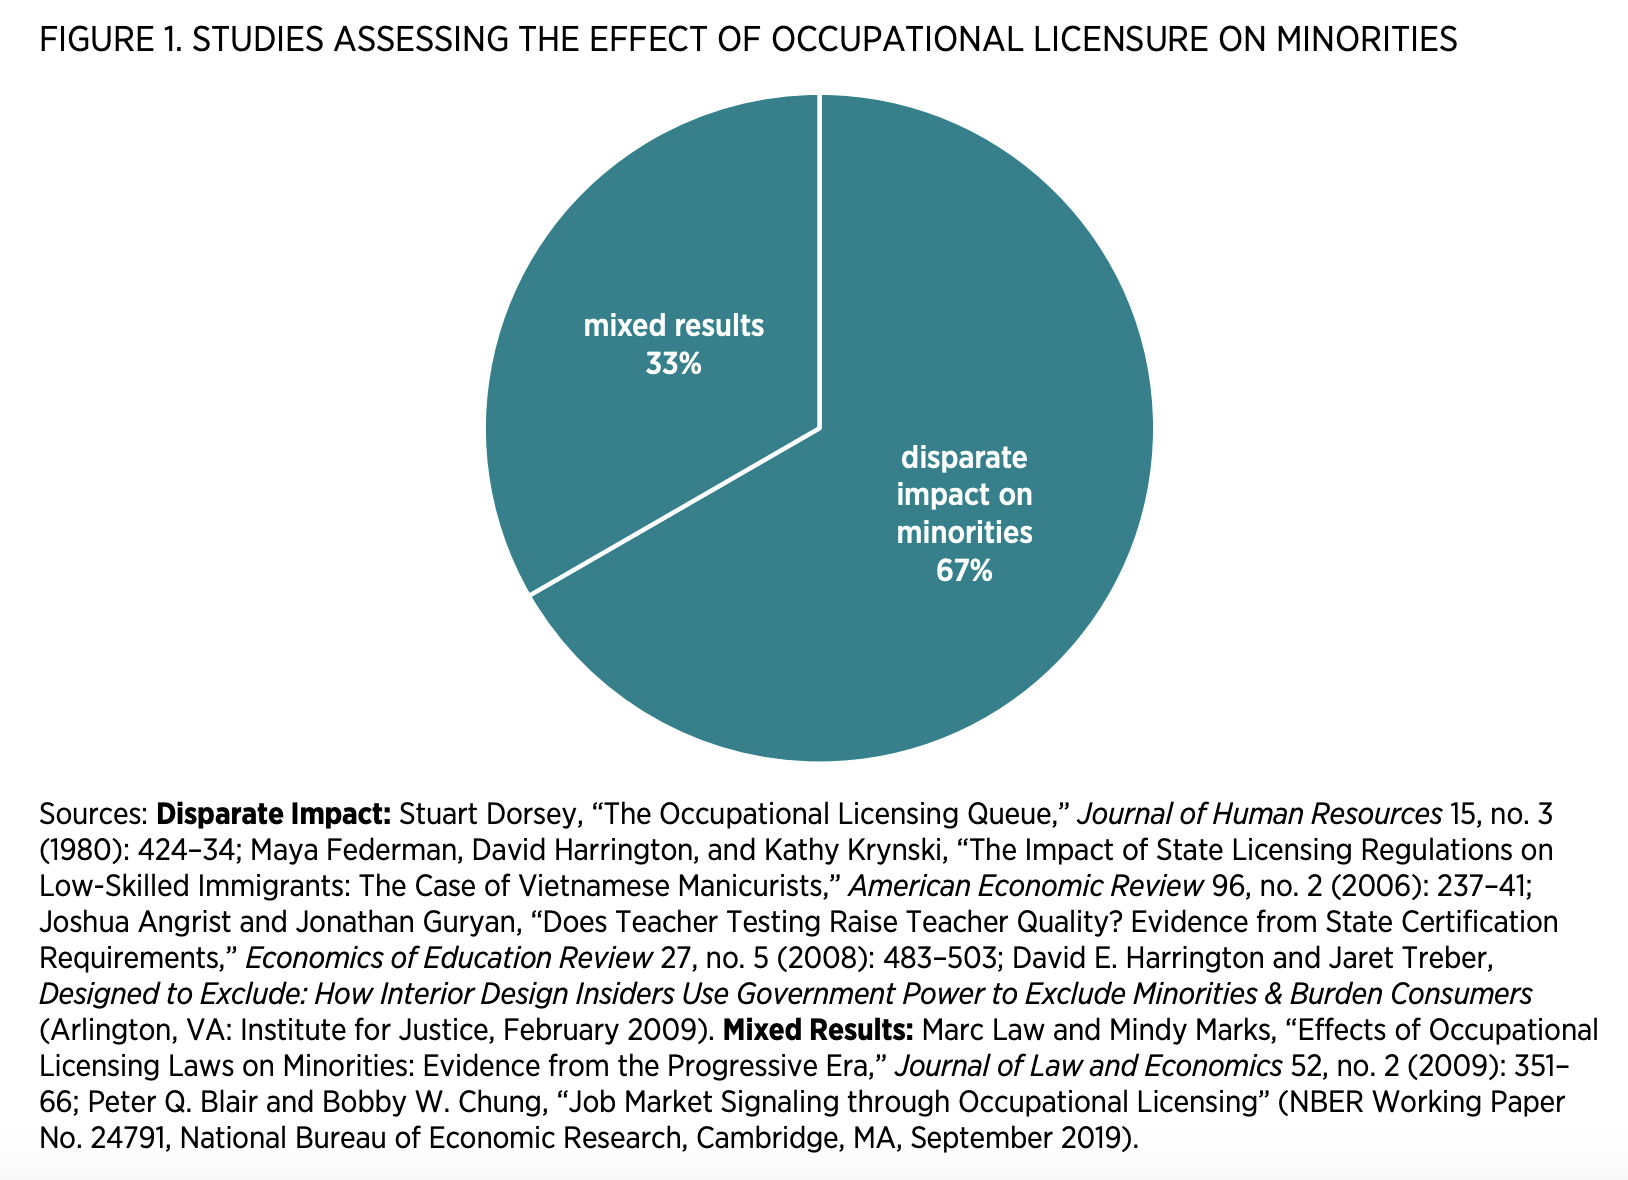 Figure 1. Studies Assessing the Effect of Occupational Licensure on Minorities